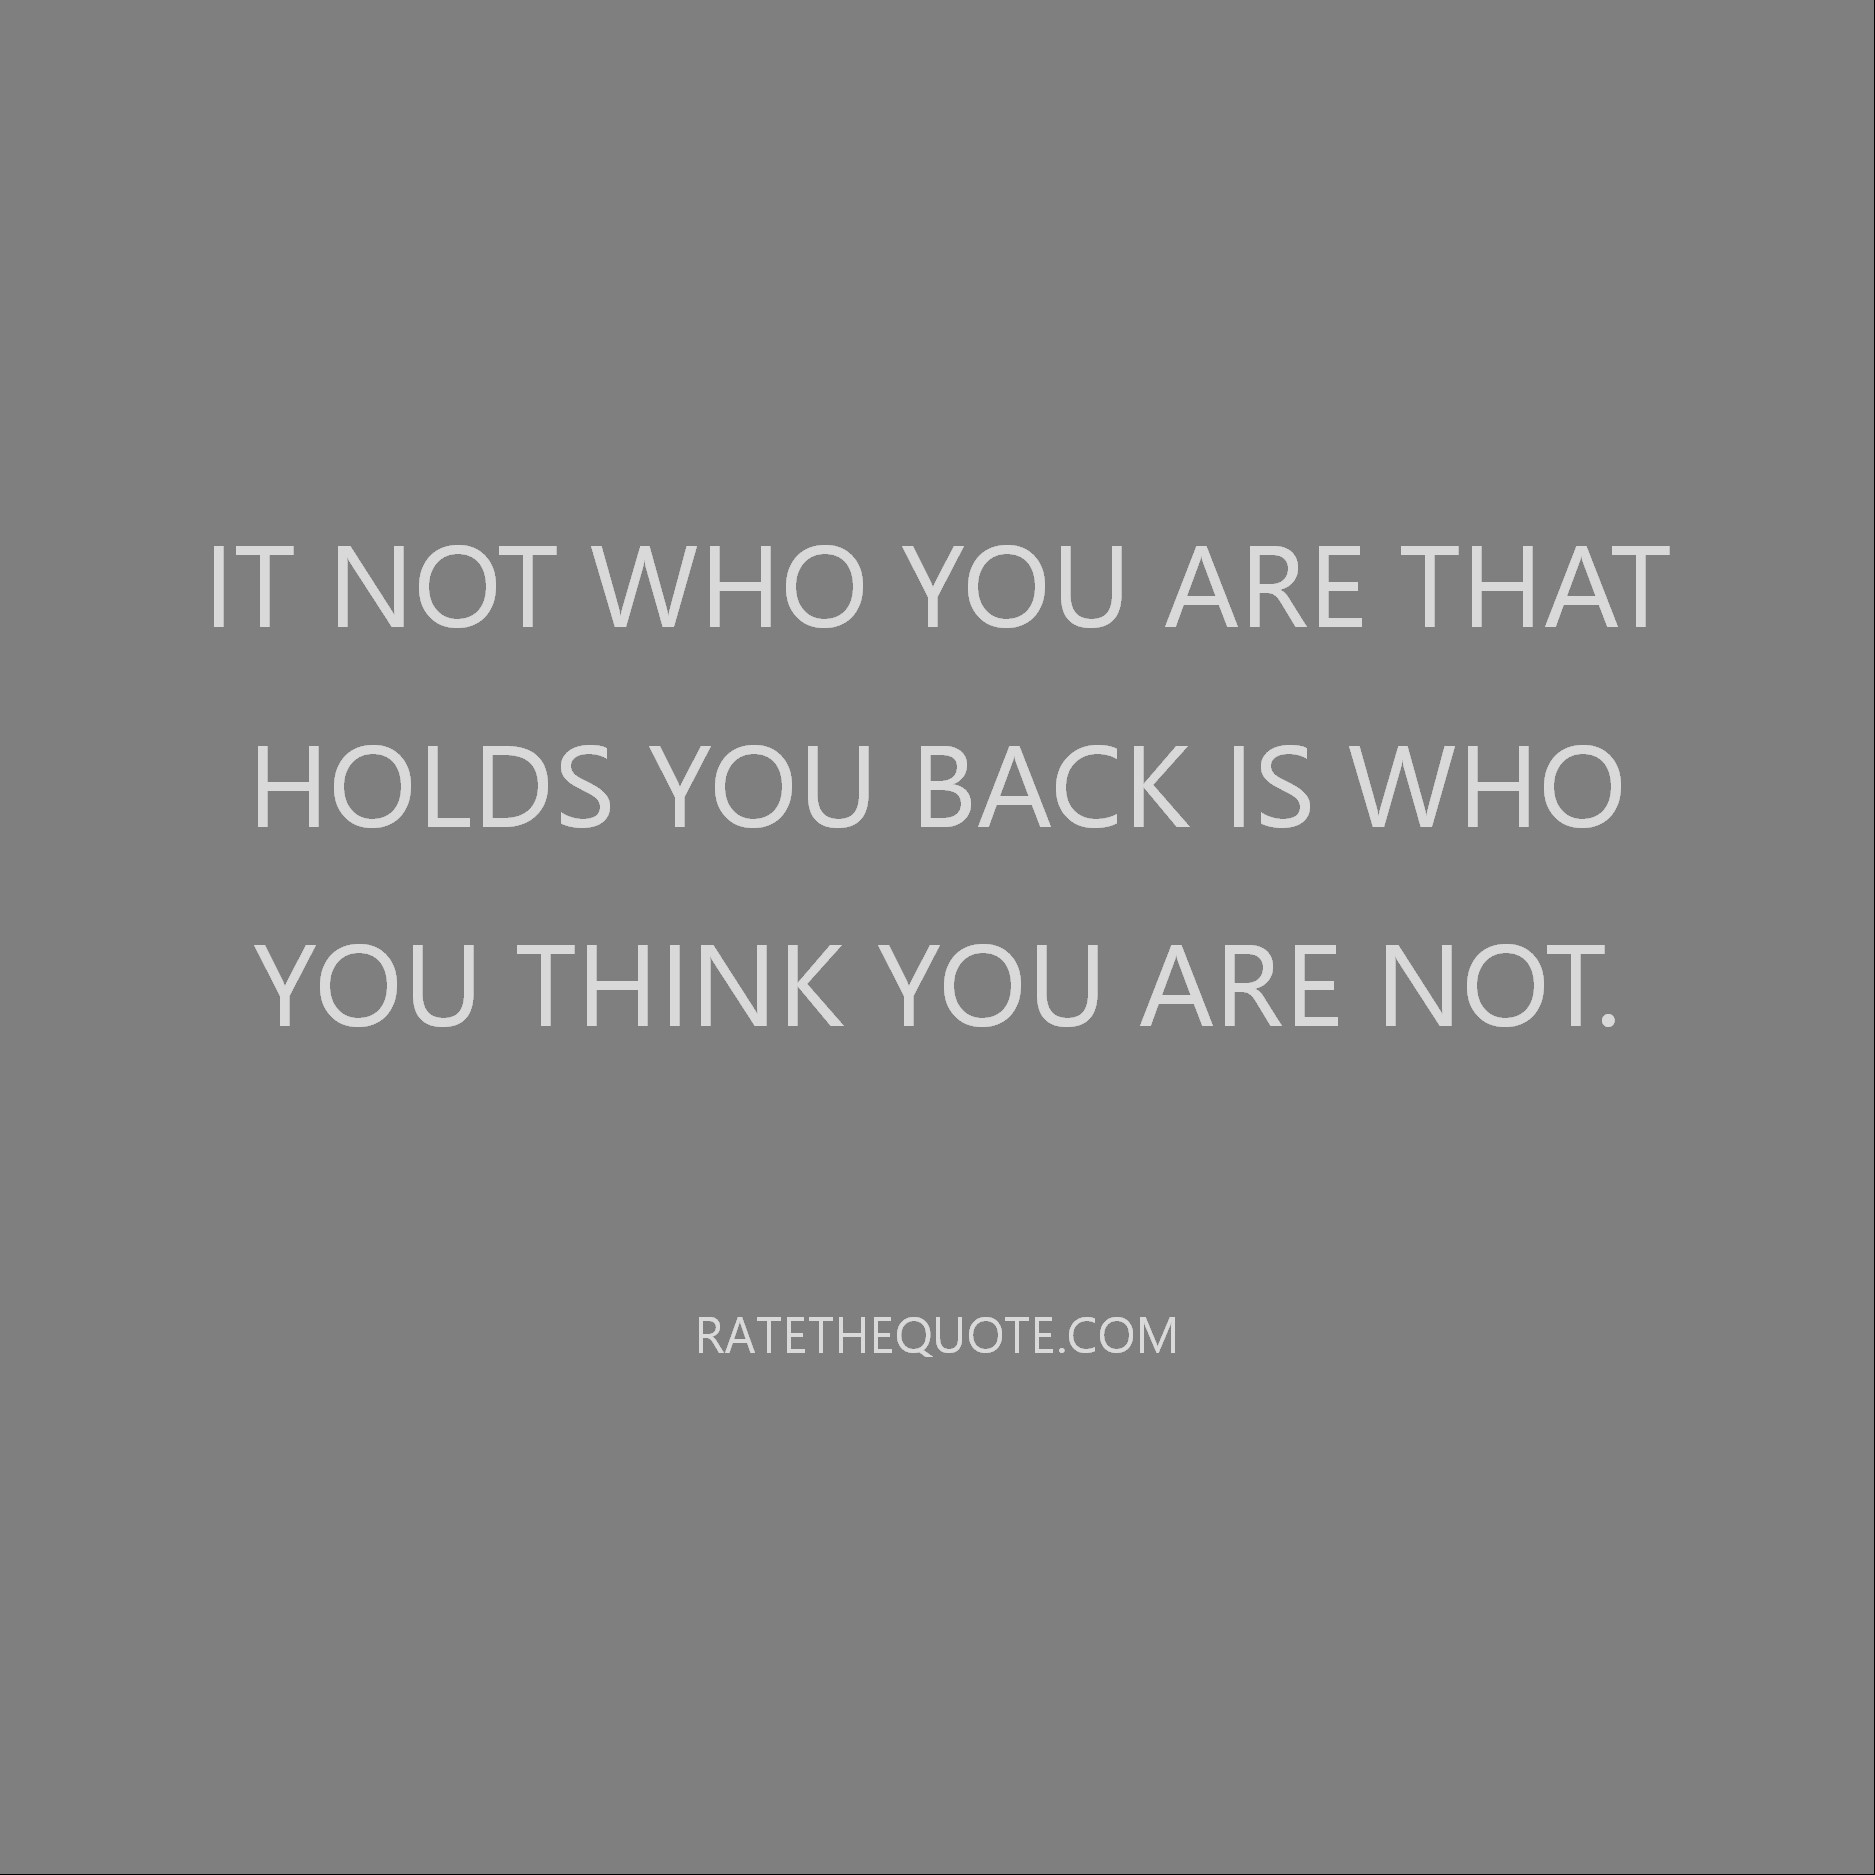 It not who you are that holds you back is who you think you are not.